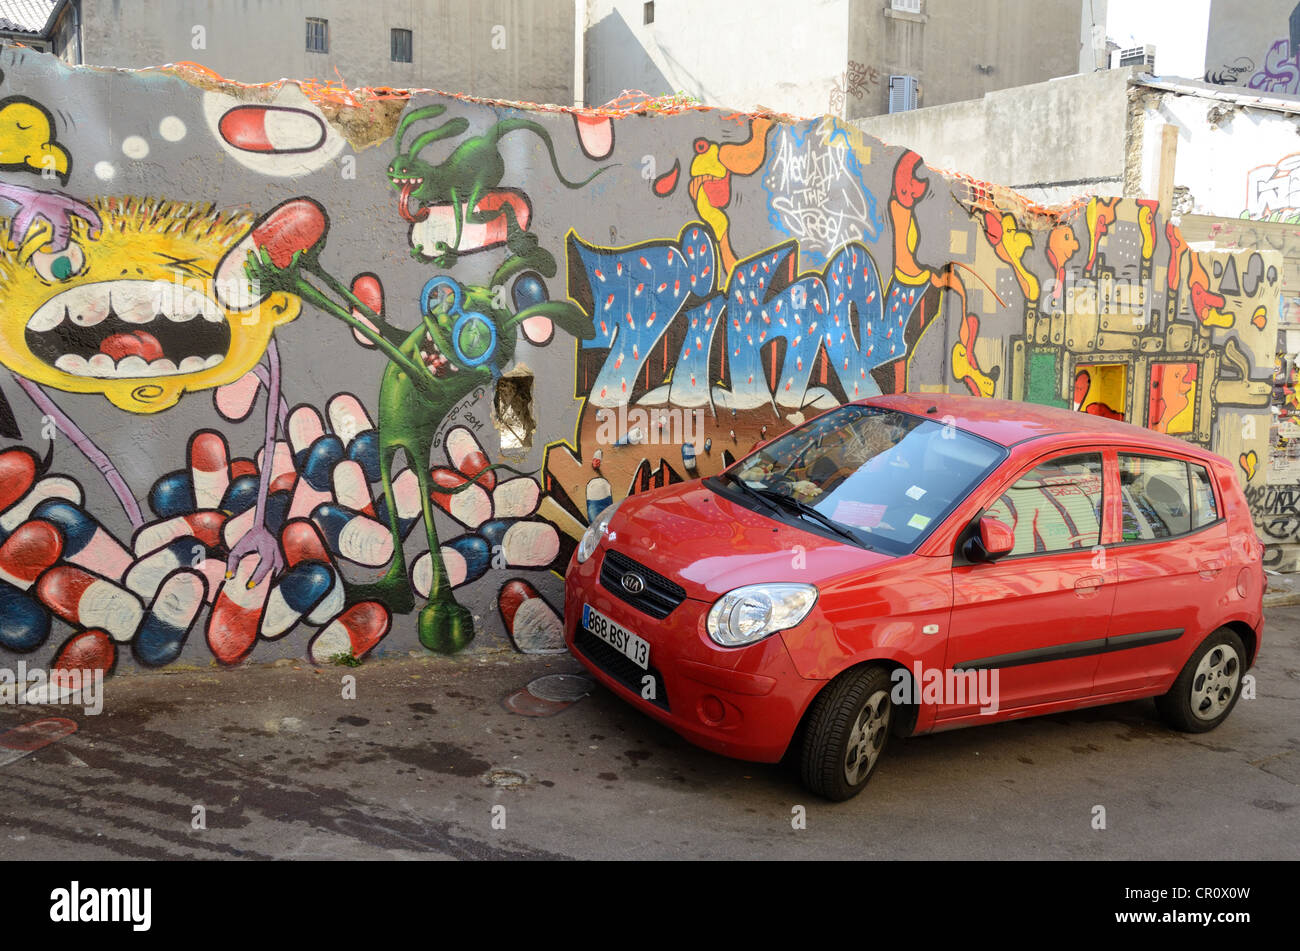 U2 graffiti wall - Red Kia Car And Graffiti Wall Cours Julien Marseille France Stock Image